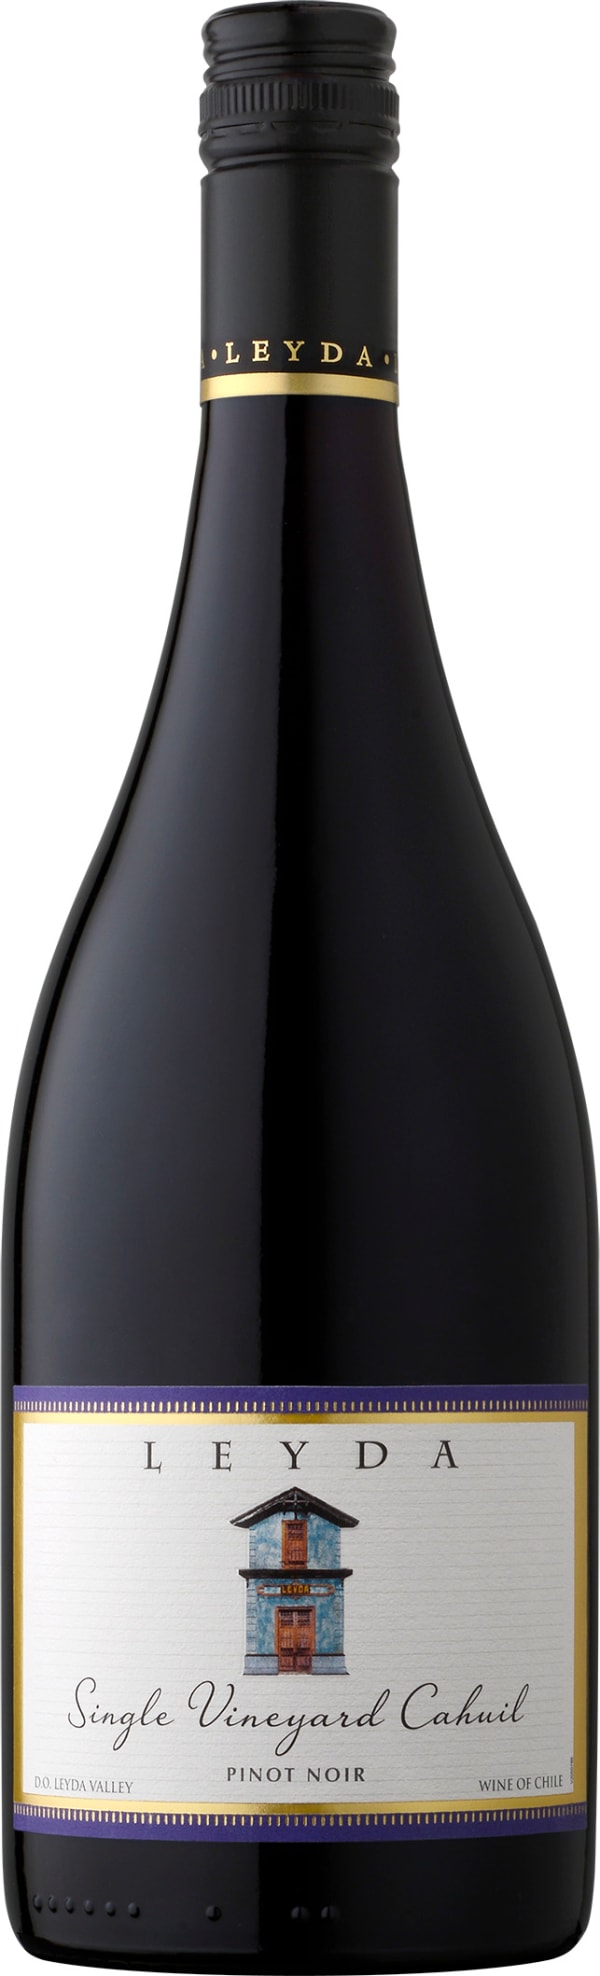 Leyda Single Vineyard Cahuil Pinot Noir 2014